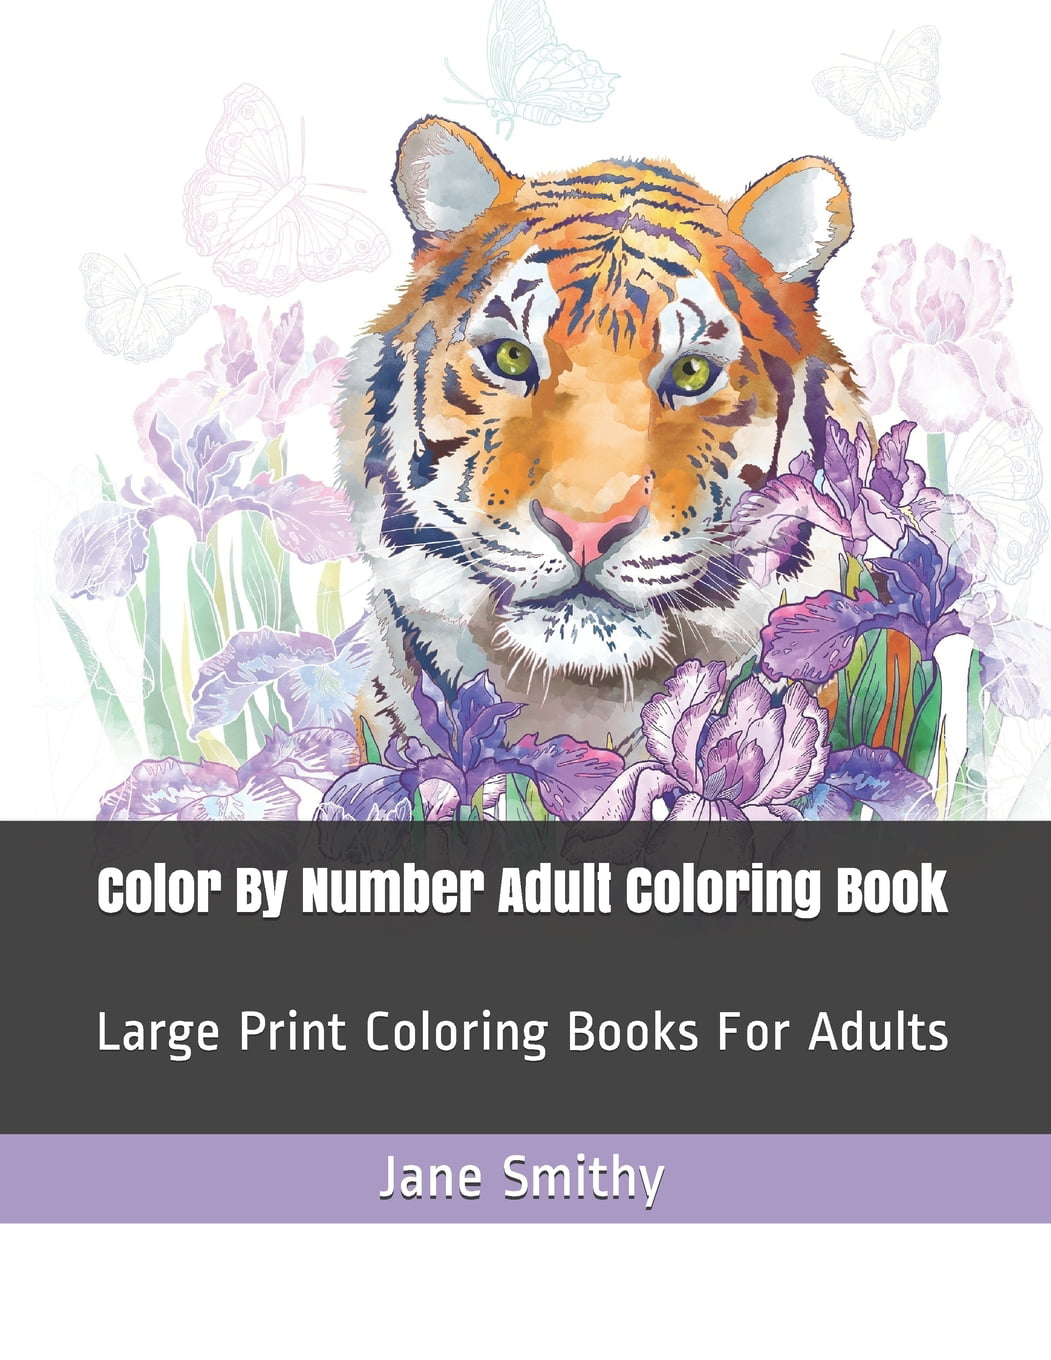 Adult Color By Numbers Color By Number Adult Coloring Book Large Print Coloring Books For Adults Paperback Large Print Walmart Com Walmart Com